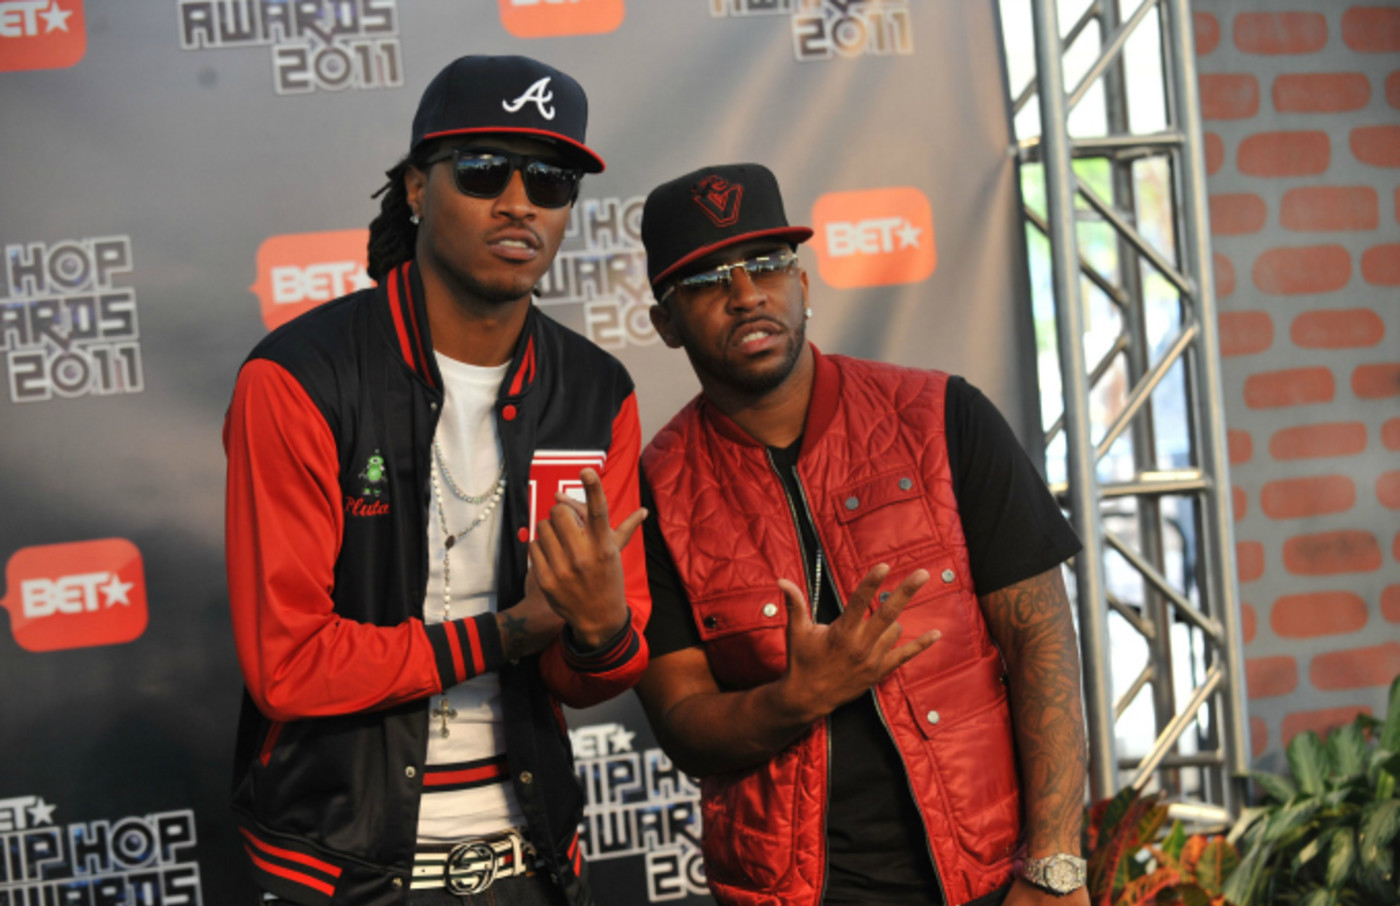 Rap artist Future and Rocco attends the BET Hip Hop Awards 2011